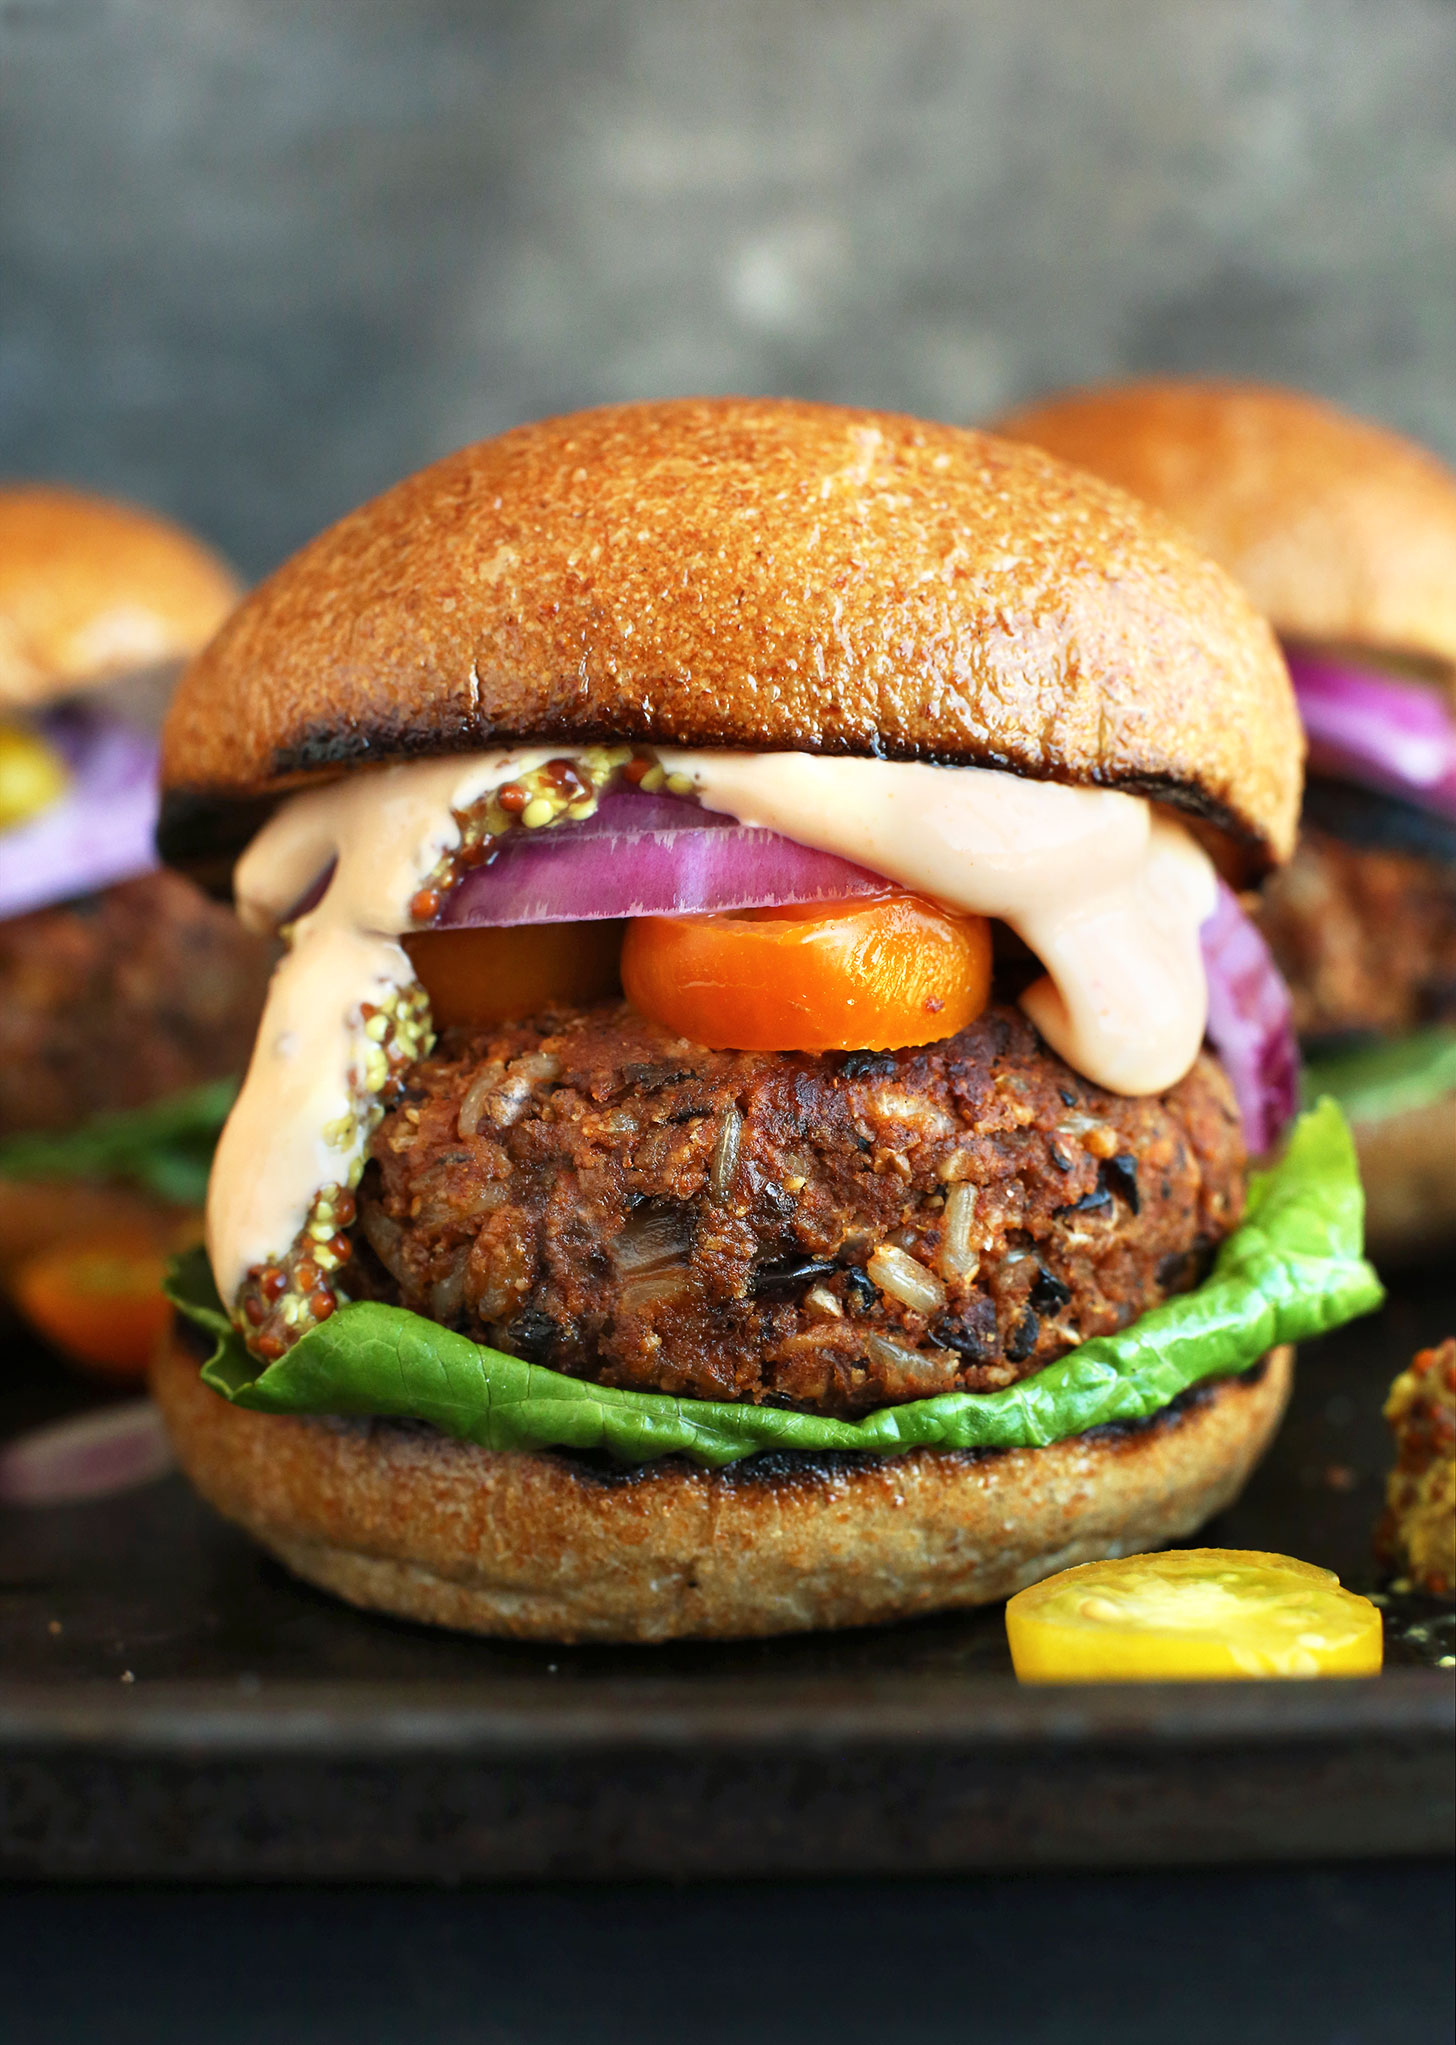 Grillable Veggie Burger Minimalist Baker Recipes